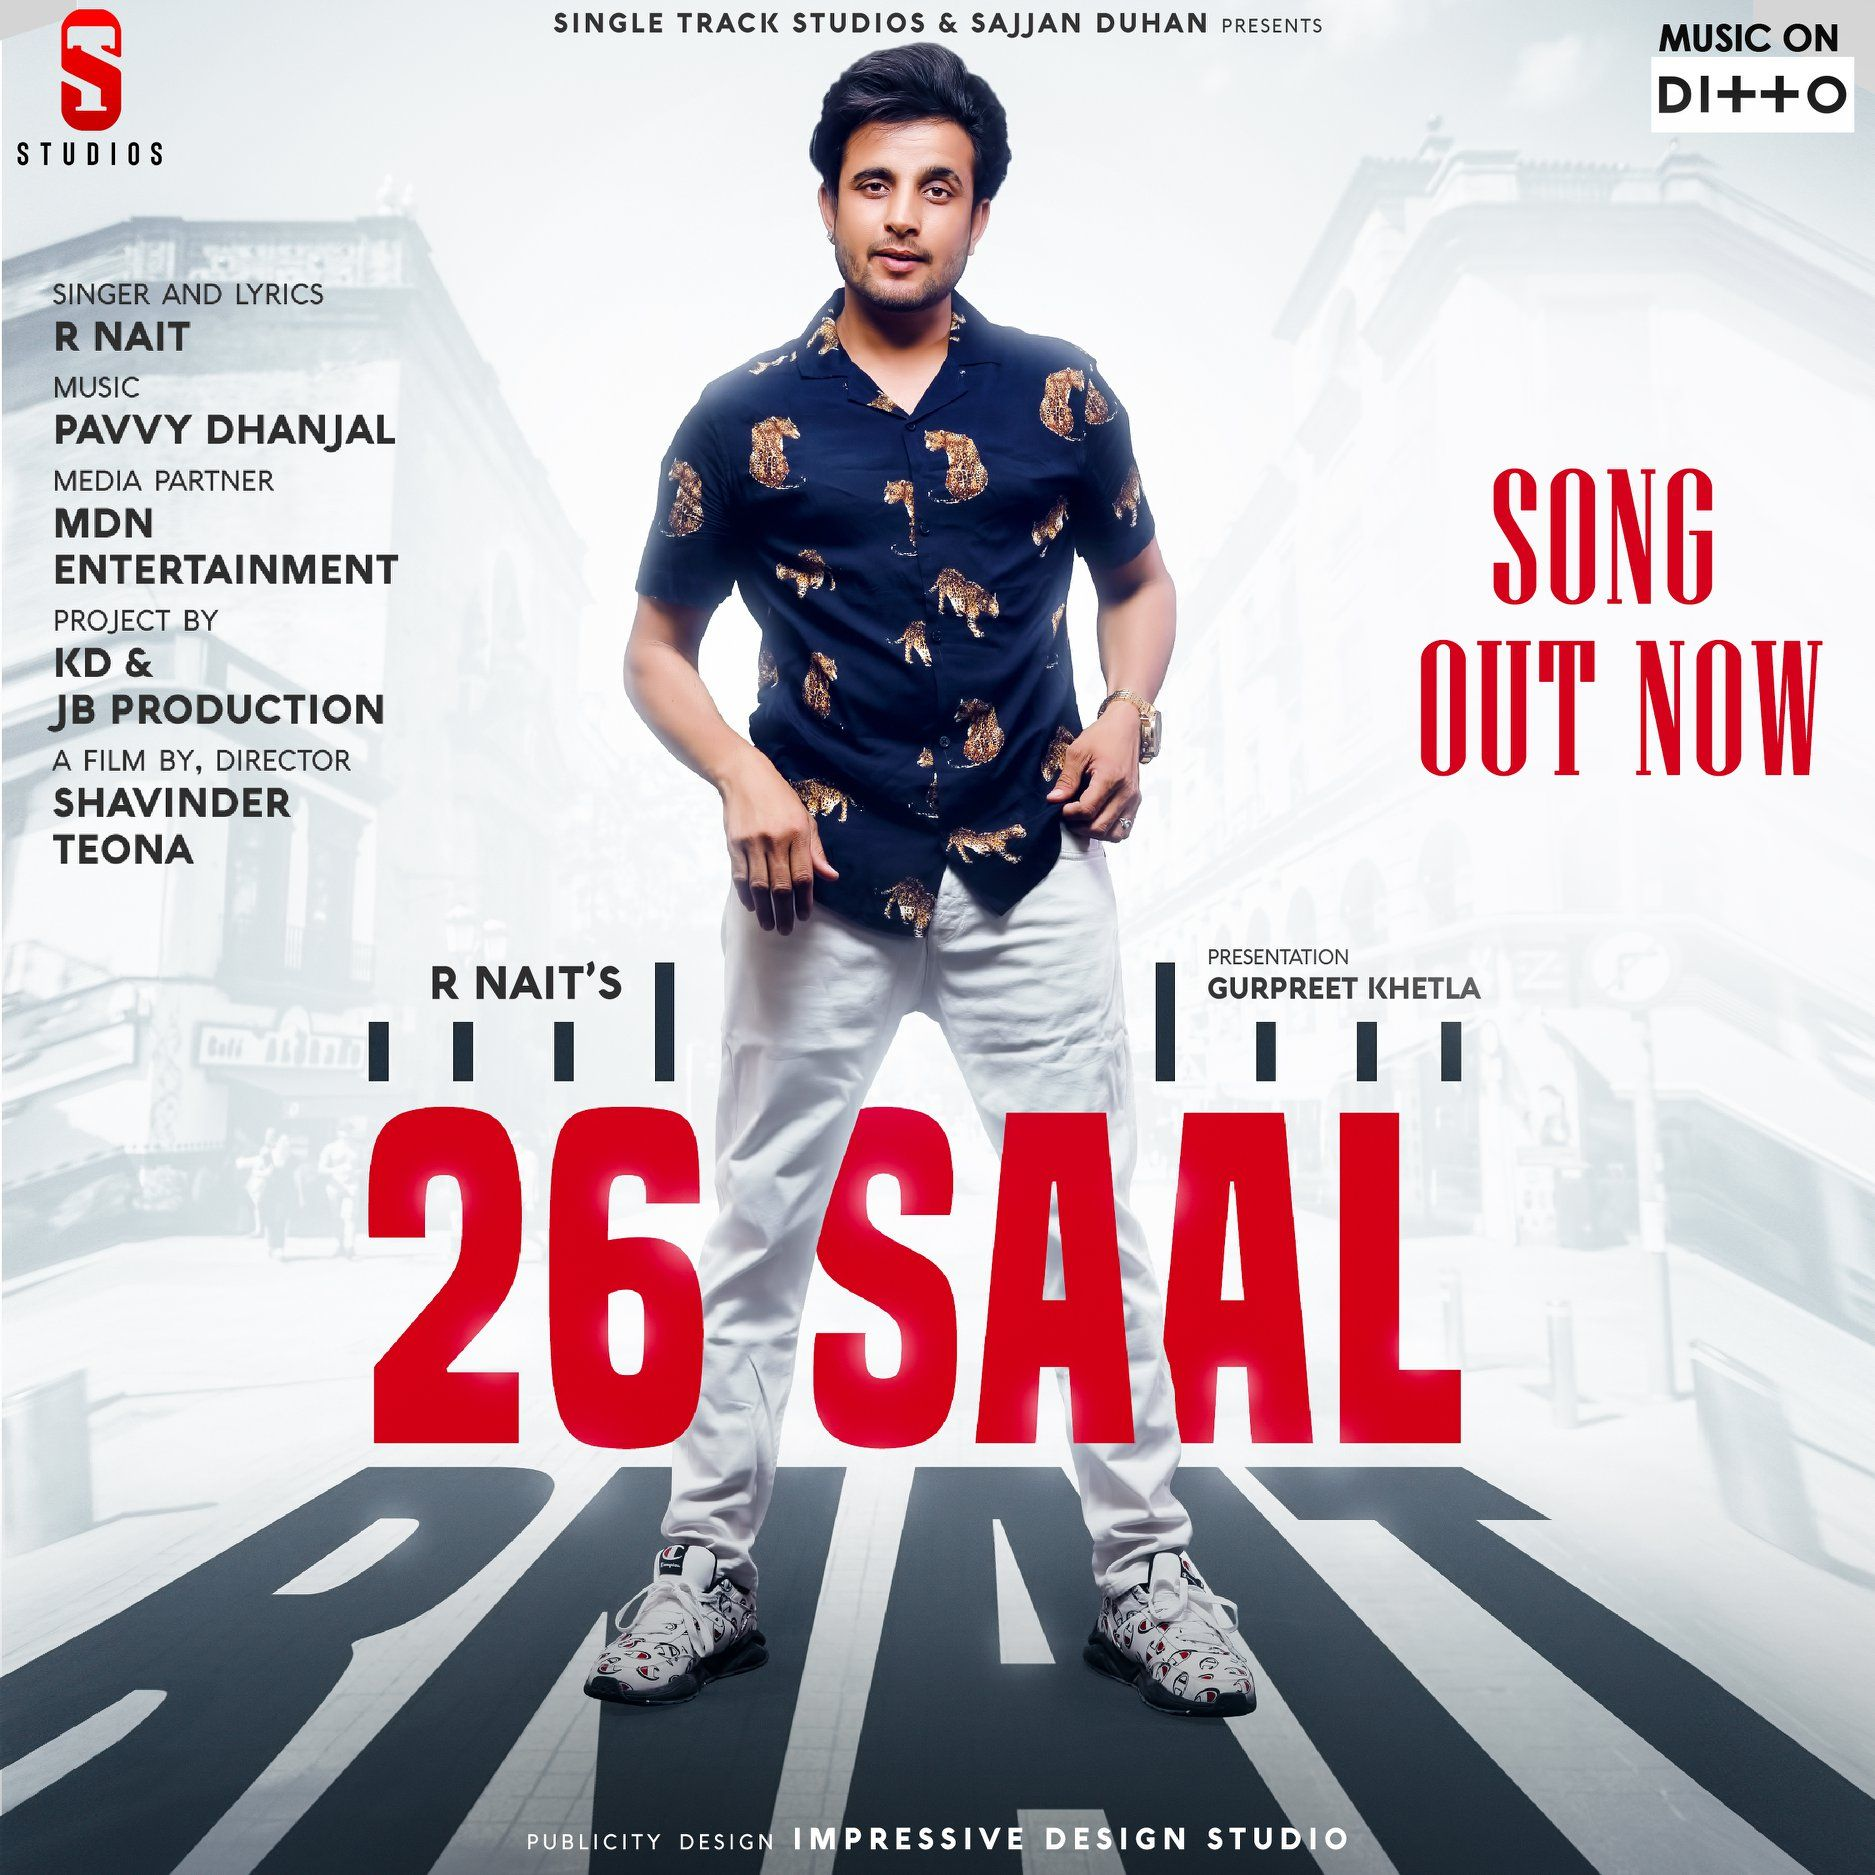 26 Saal By R Nait Mp3 Punjabi Song Download And Listen Songs Mp3 Song Mp3 Song Download